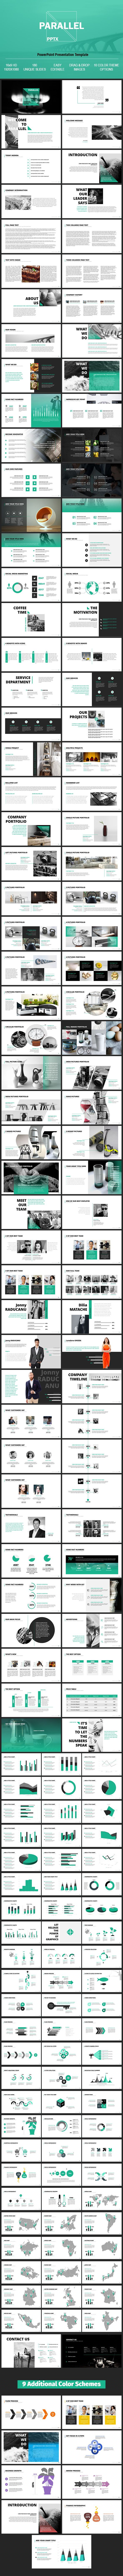 Parallel - Multipurpose PowerPoint Presentation Template - 180 Modern & Unique Slides